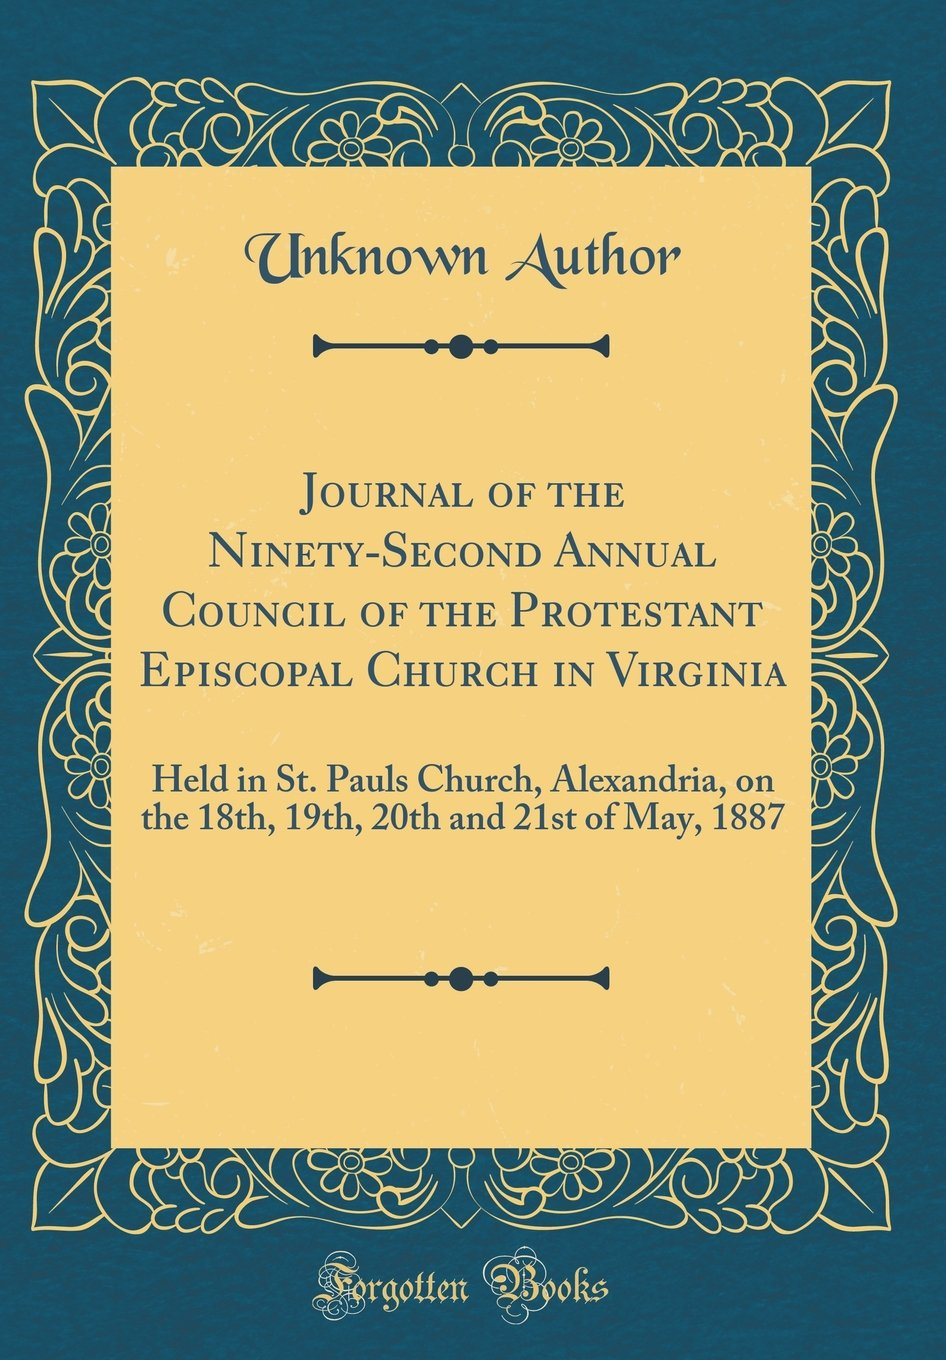 Download Journal of the Ninety-Second Annual Council of the Protestant Episcopal Church in Virginia: Held in St. Pauls Church, Alexandria, on the 18th, 19th, 20th and 21st of May, 1887 (Classic Reprint) pdf